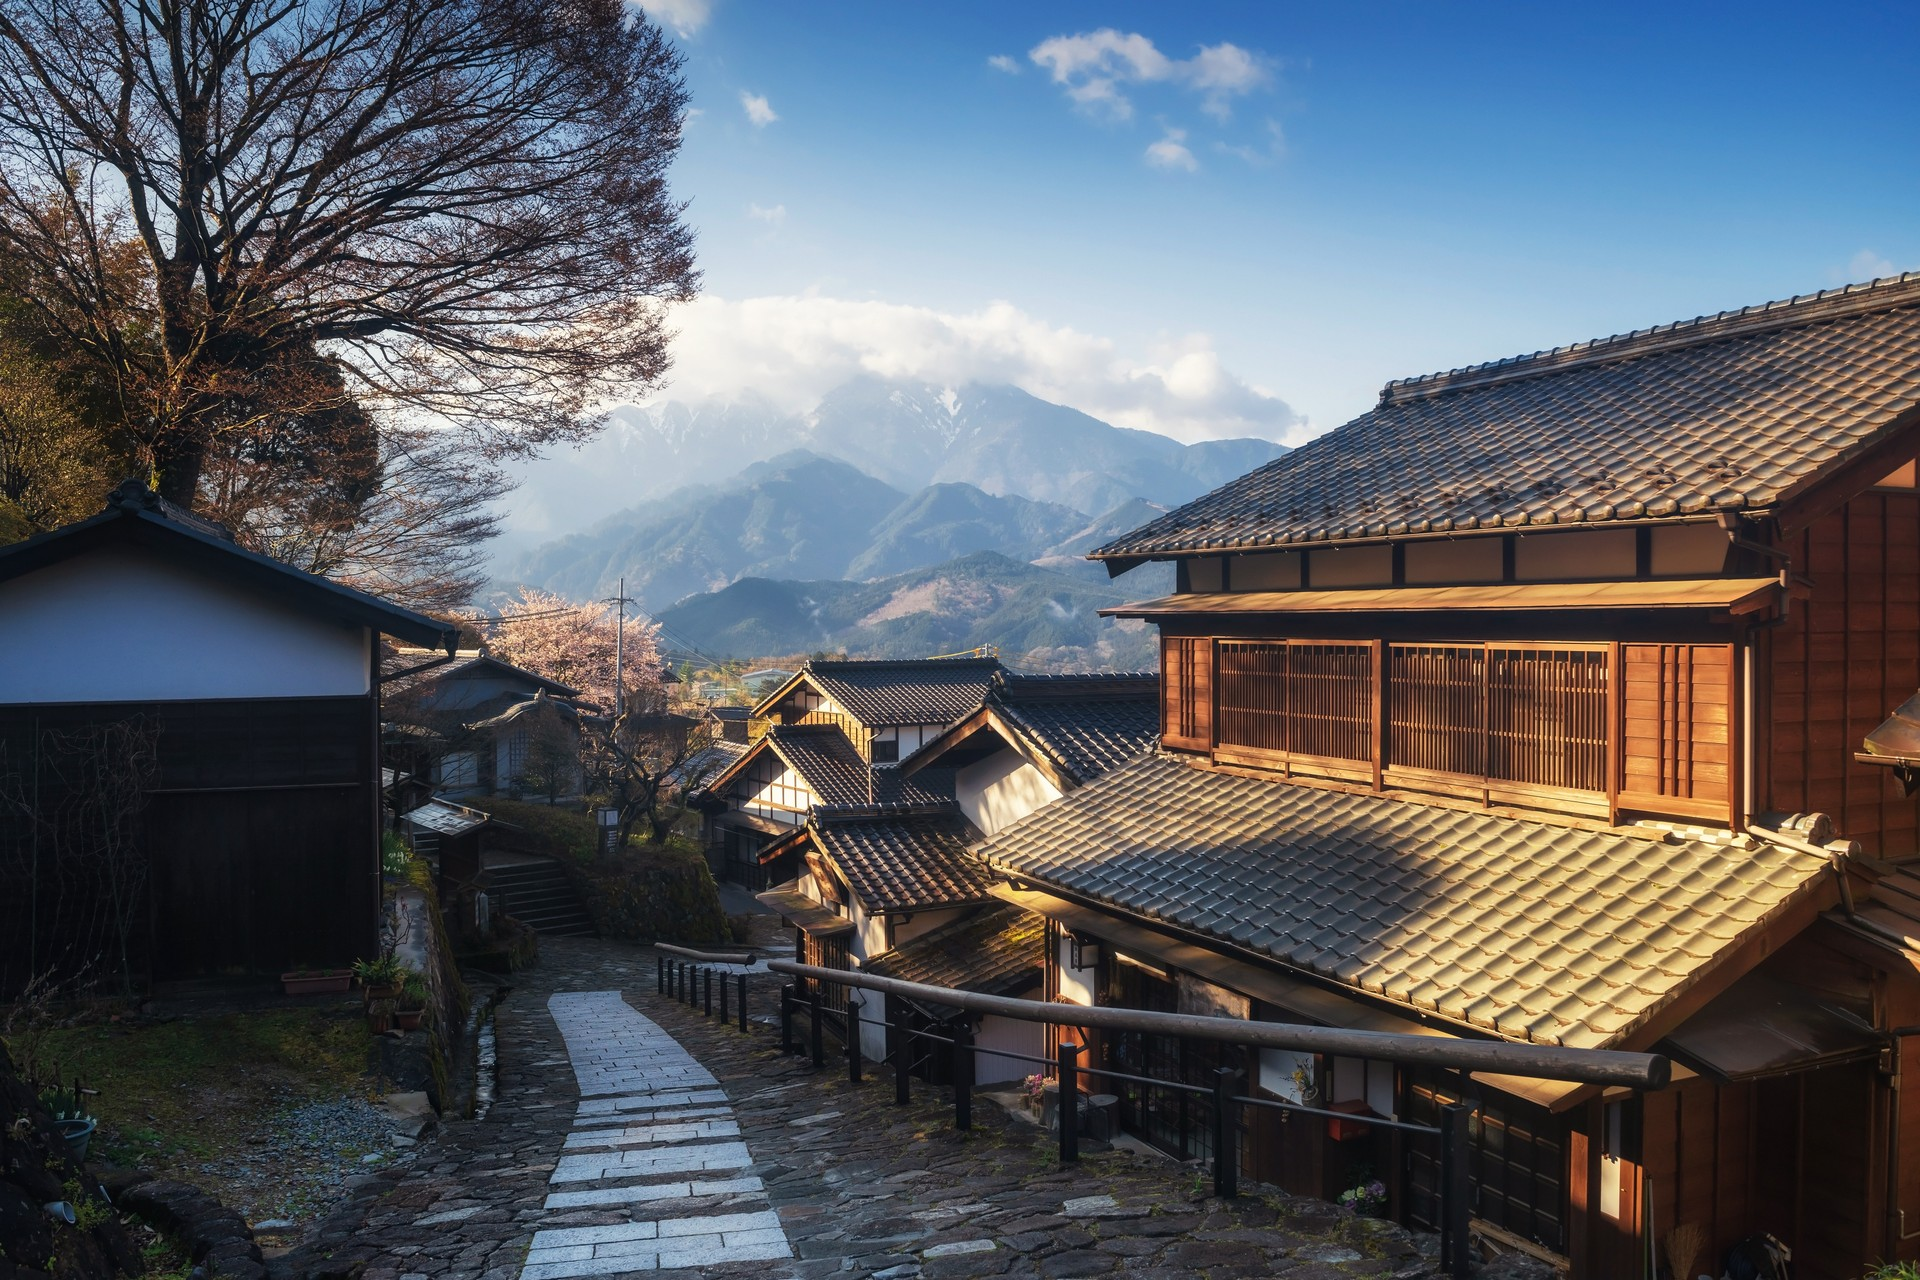 The Nakasendo Trail in Japan